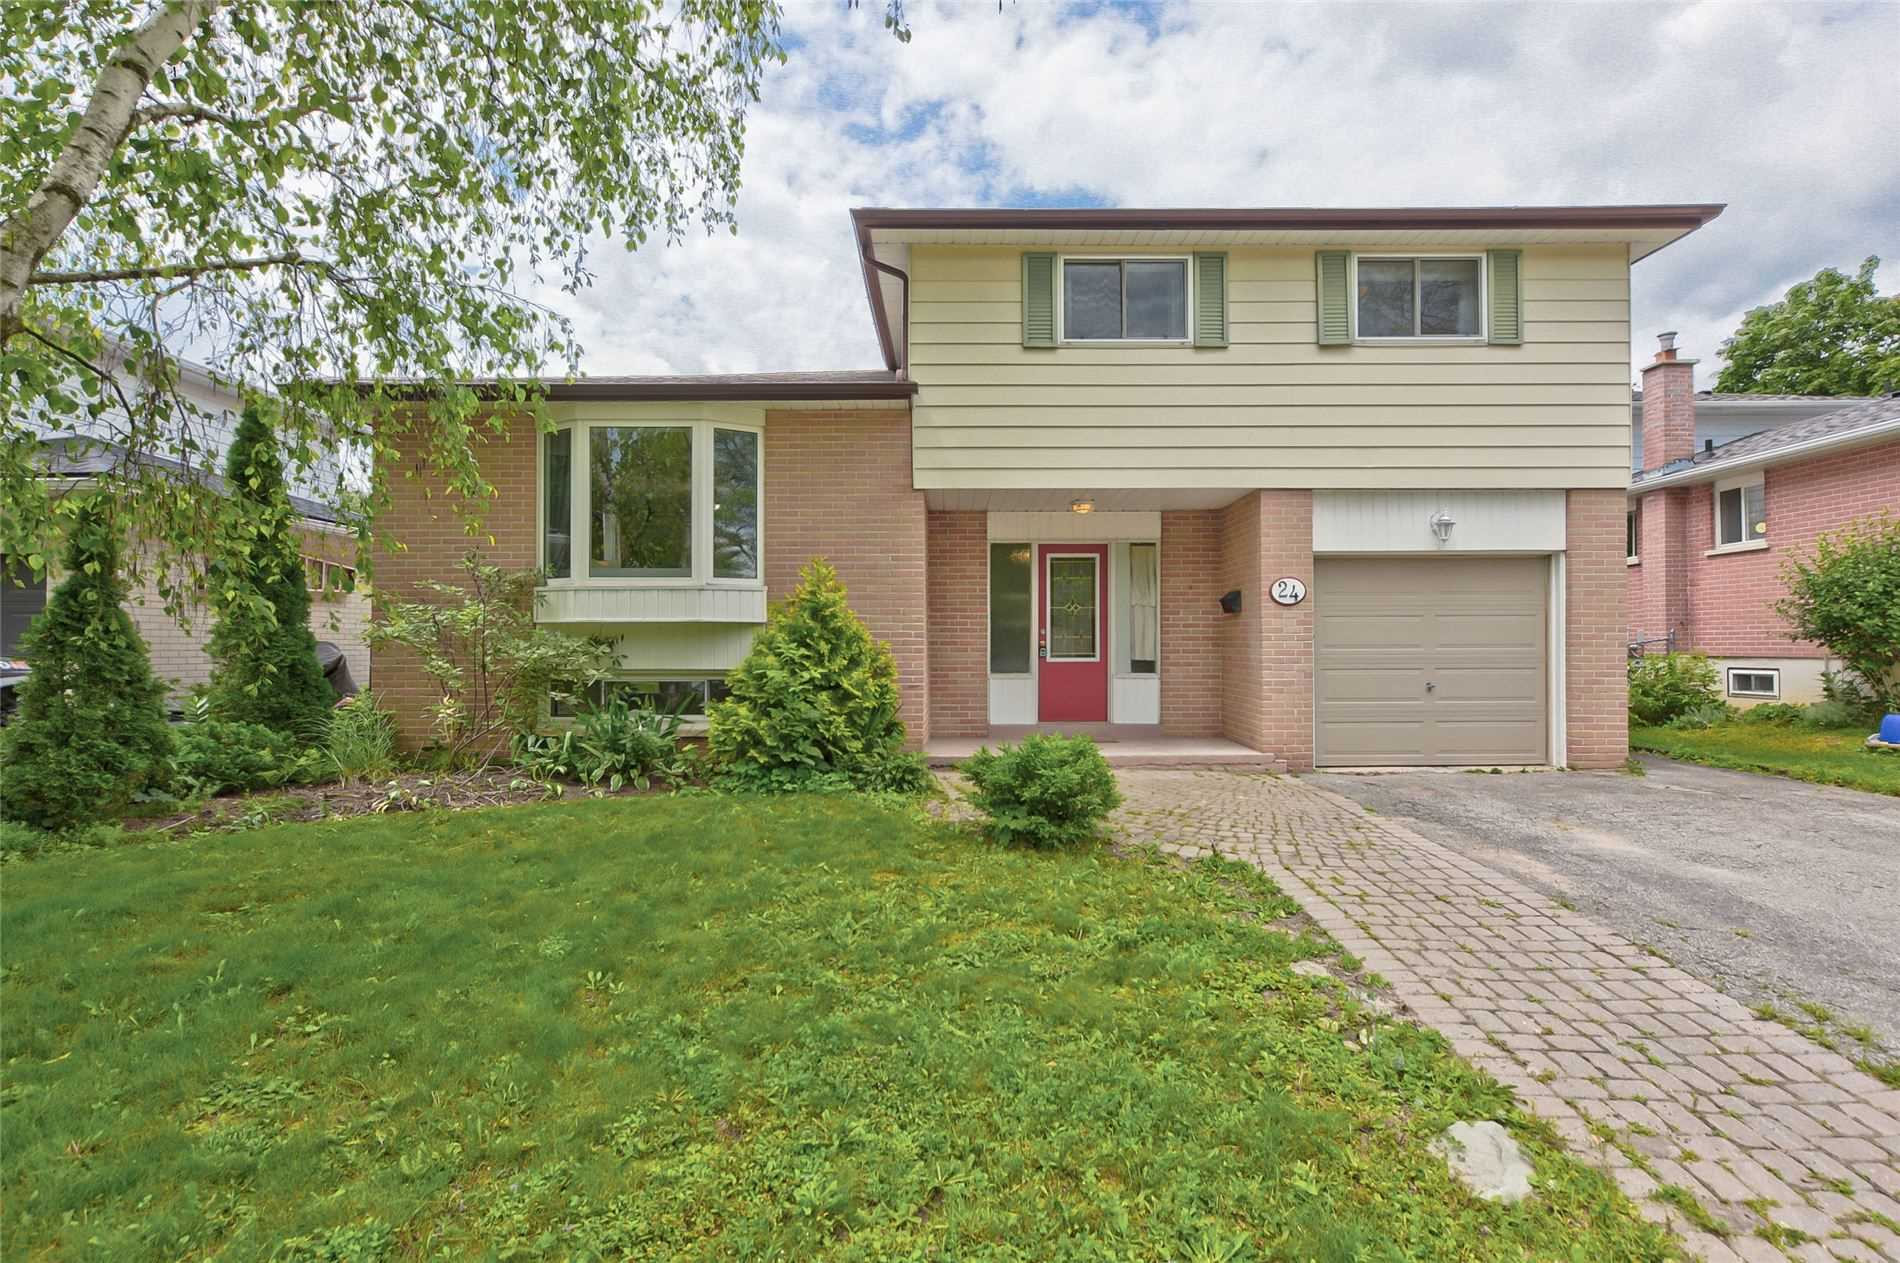 Detached house For Sale In Barrie - 24 Glenecho Dr, Barrie, Ontario, Canada L4M4J3 , 4 Bedrooms Bedrooms, ,3 BathroomsBathrooms,Detached,For Sale,Glenecho